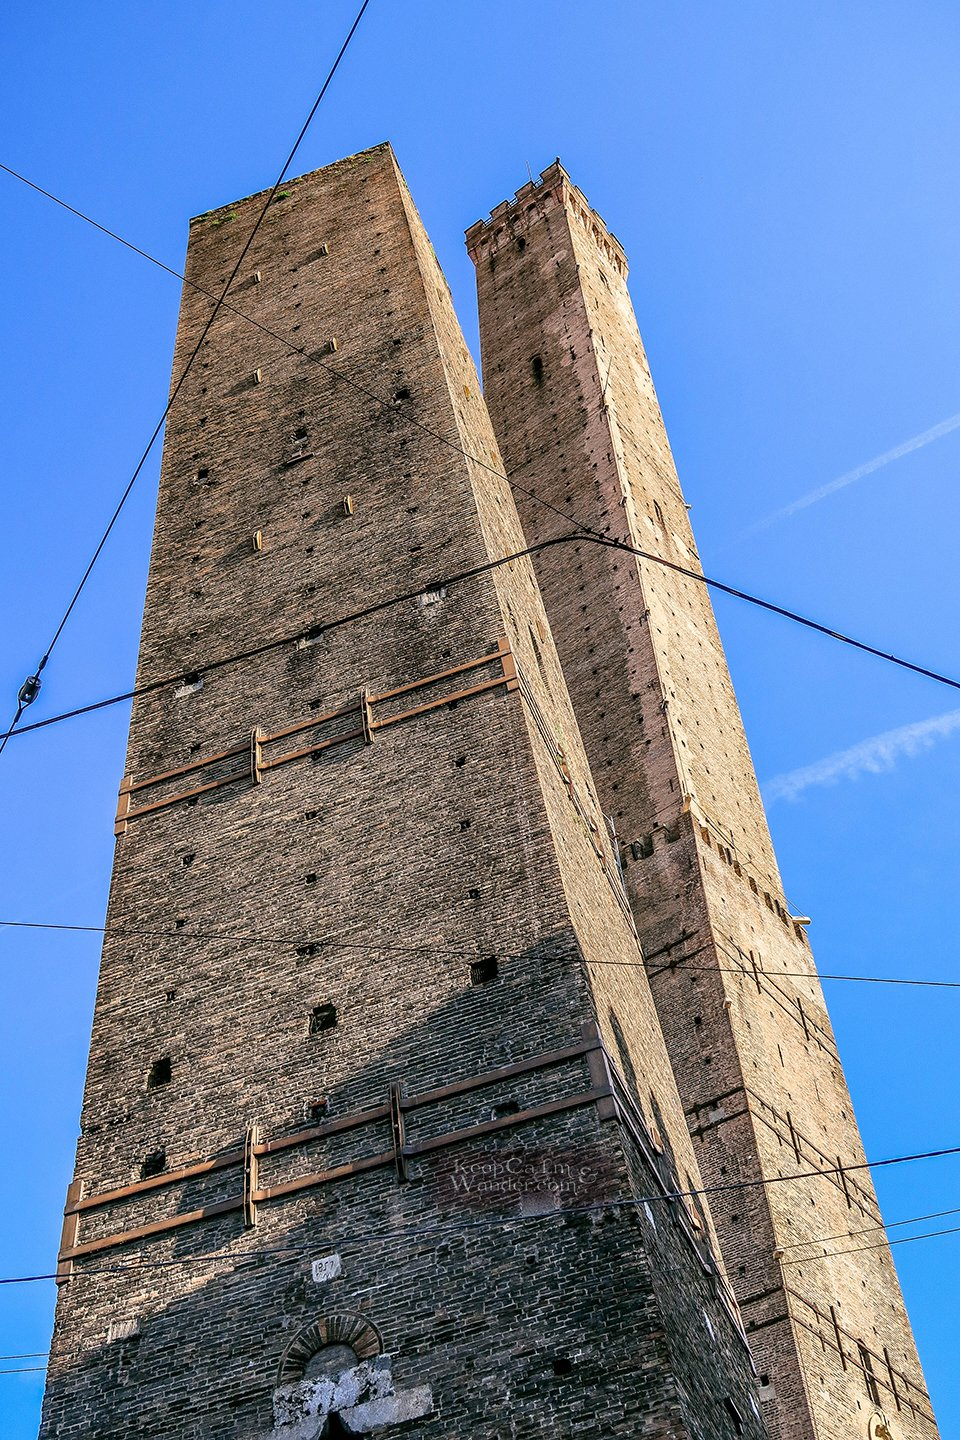 This Leaning Tower of Bologna Leans More Than the Leaning Tower of Pisa (Italy).